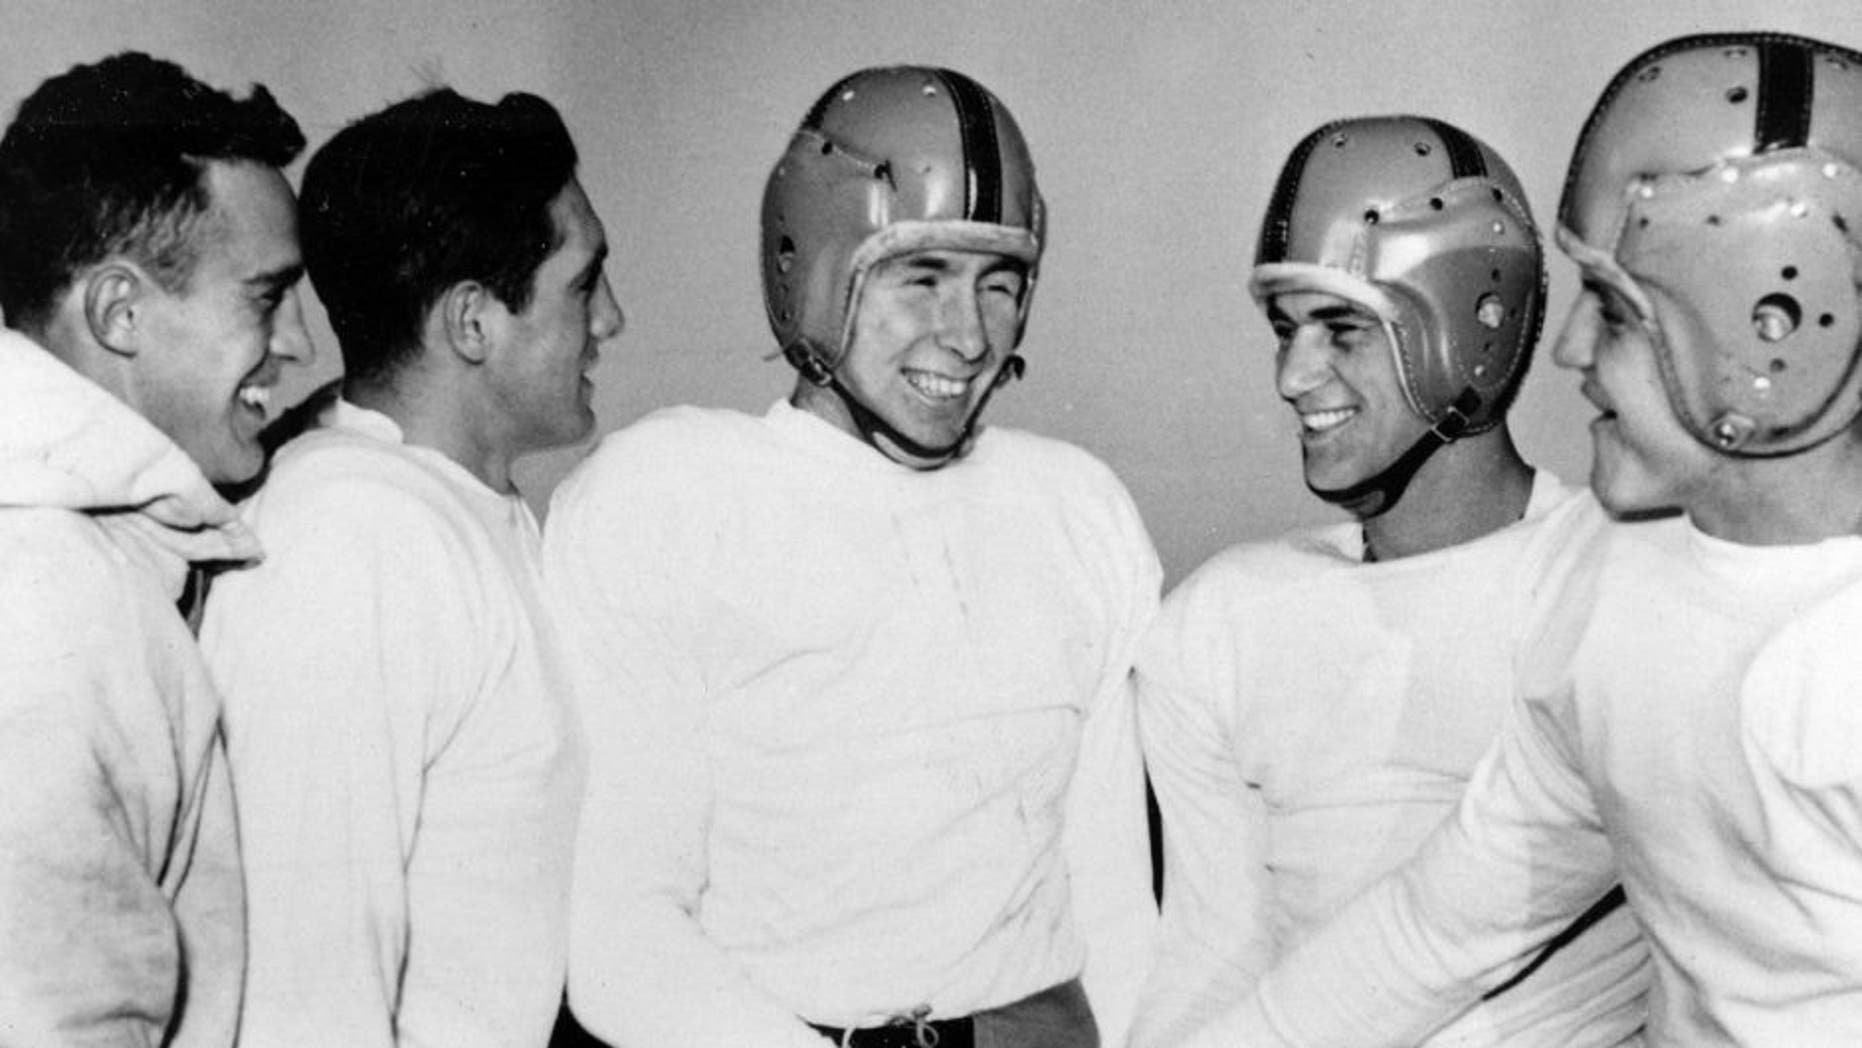 FILE - In this Dec. 11, 1953, file photo, Notre Dame player John Lattner, center, winner of the 1953 Heisman tropy and second-time winner of the Maxwell trophy, receives congratulations from teammates at practice in South Bend, Ind. Lattner, who helped lead Notre Dame to a 9-0-1 record and a No. 2 ranking in Frank Leahy's final year as coach, has died at 83. His death was confirmed Saturday, Feb. 13, 2016, by Notre Dame. (AP Photo/File)